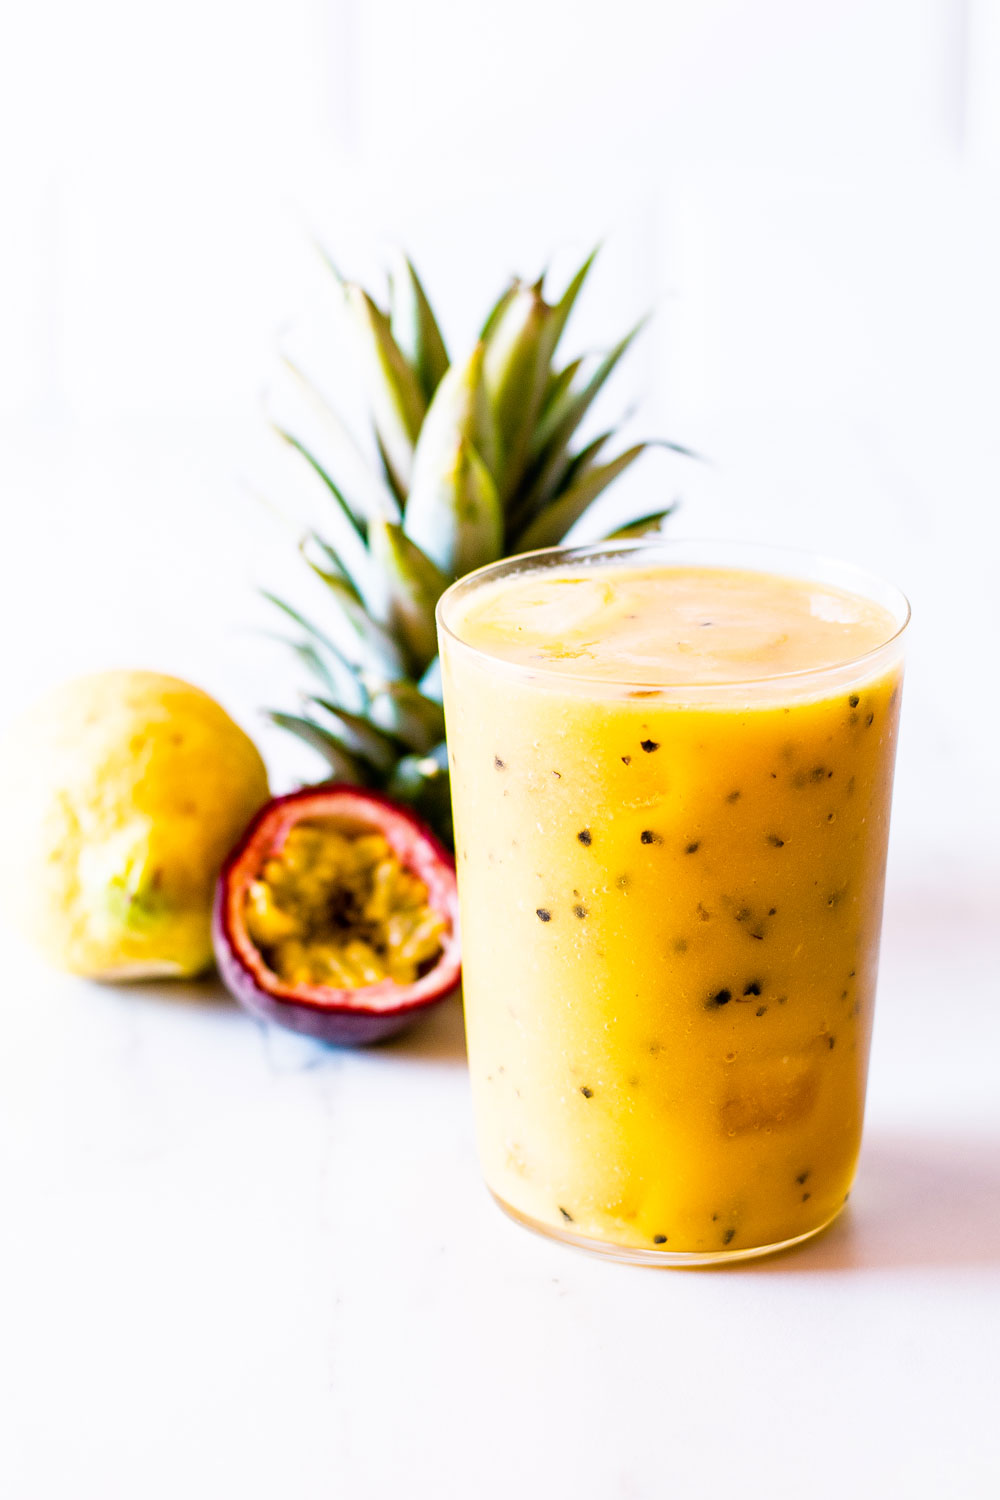 This passion fruit, mango & pineapple tropical smoothie is packed with vitamin C and helps keep your skin tight, glowy, and protected from the sun! https://www.spotebi.com/recipes/passion-fruit-mango-pineapple-tropical-smoothie/